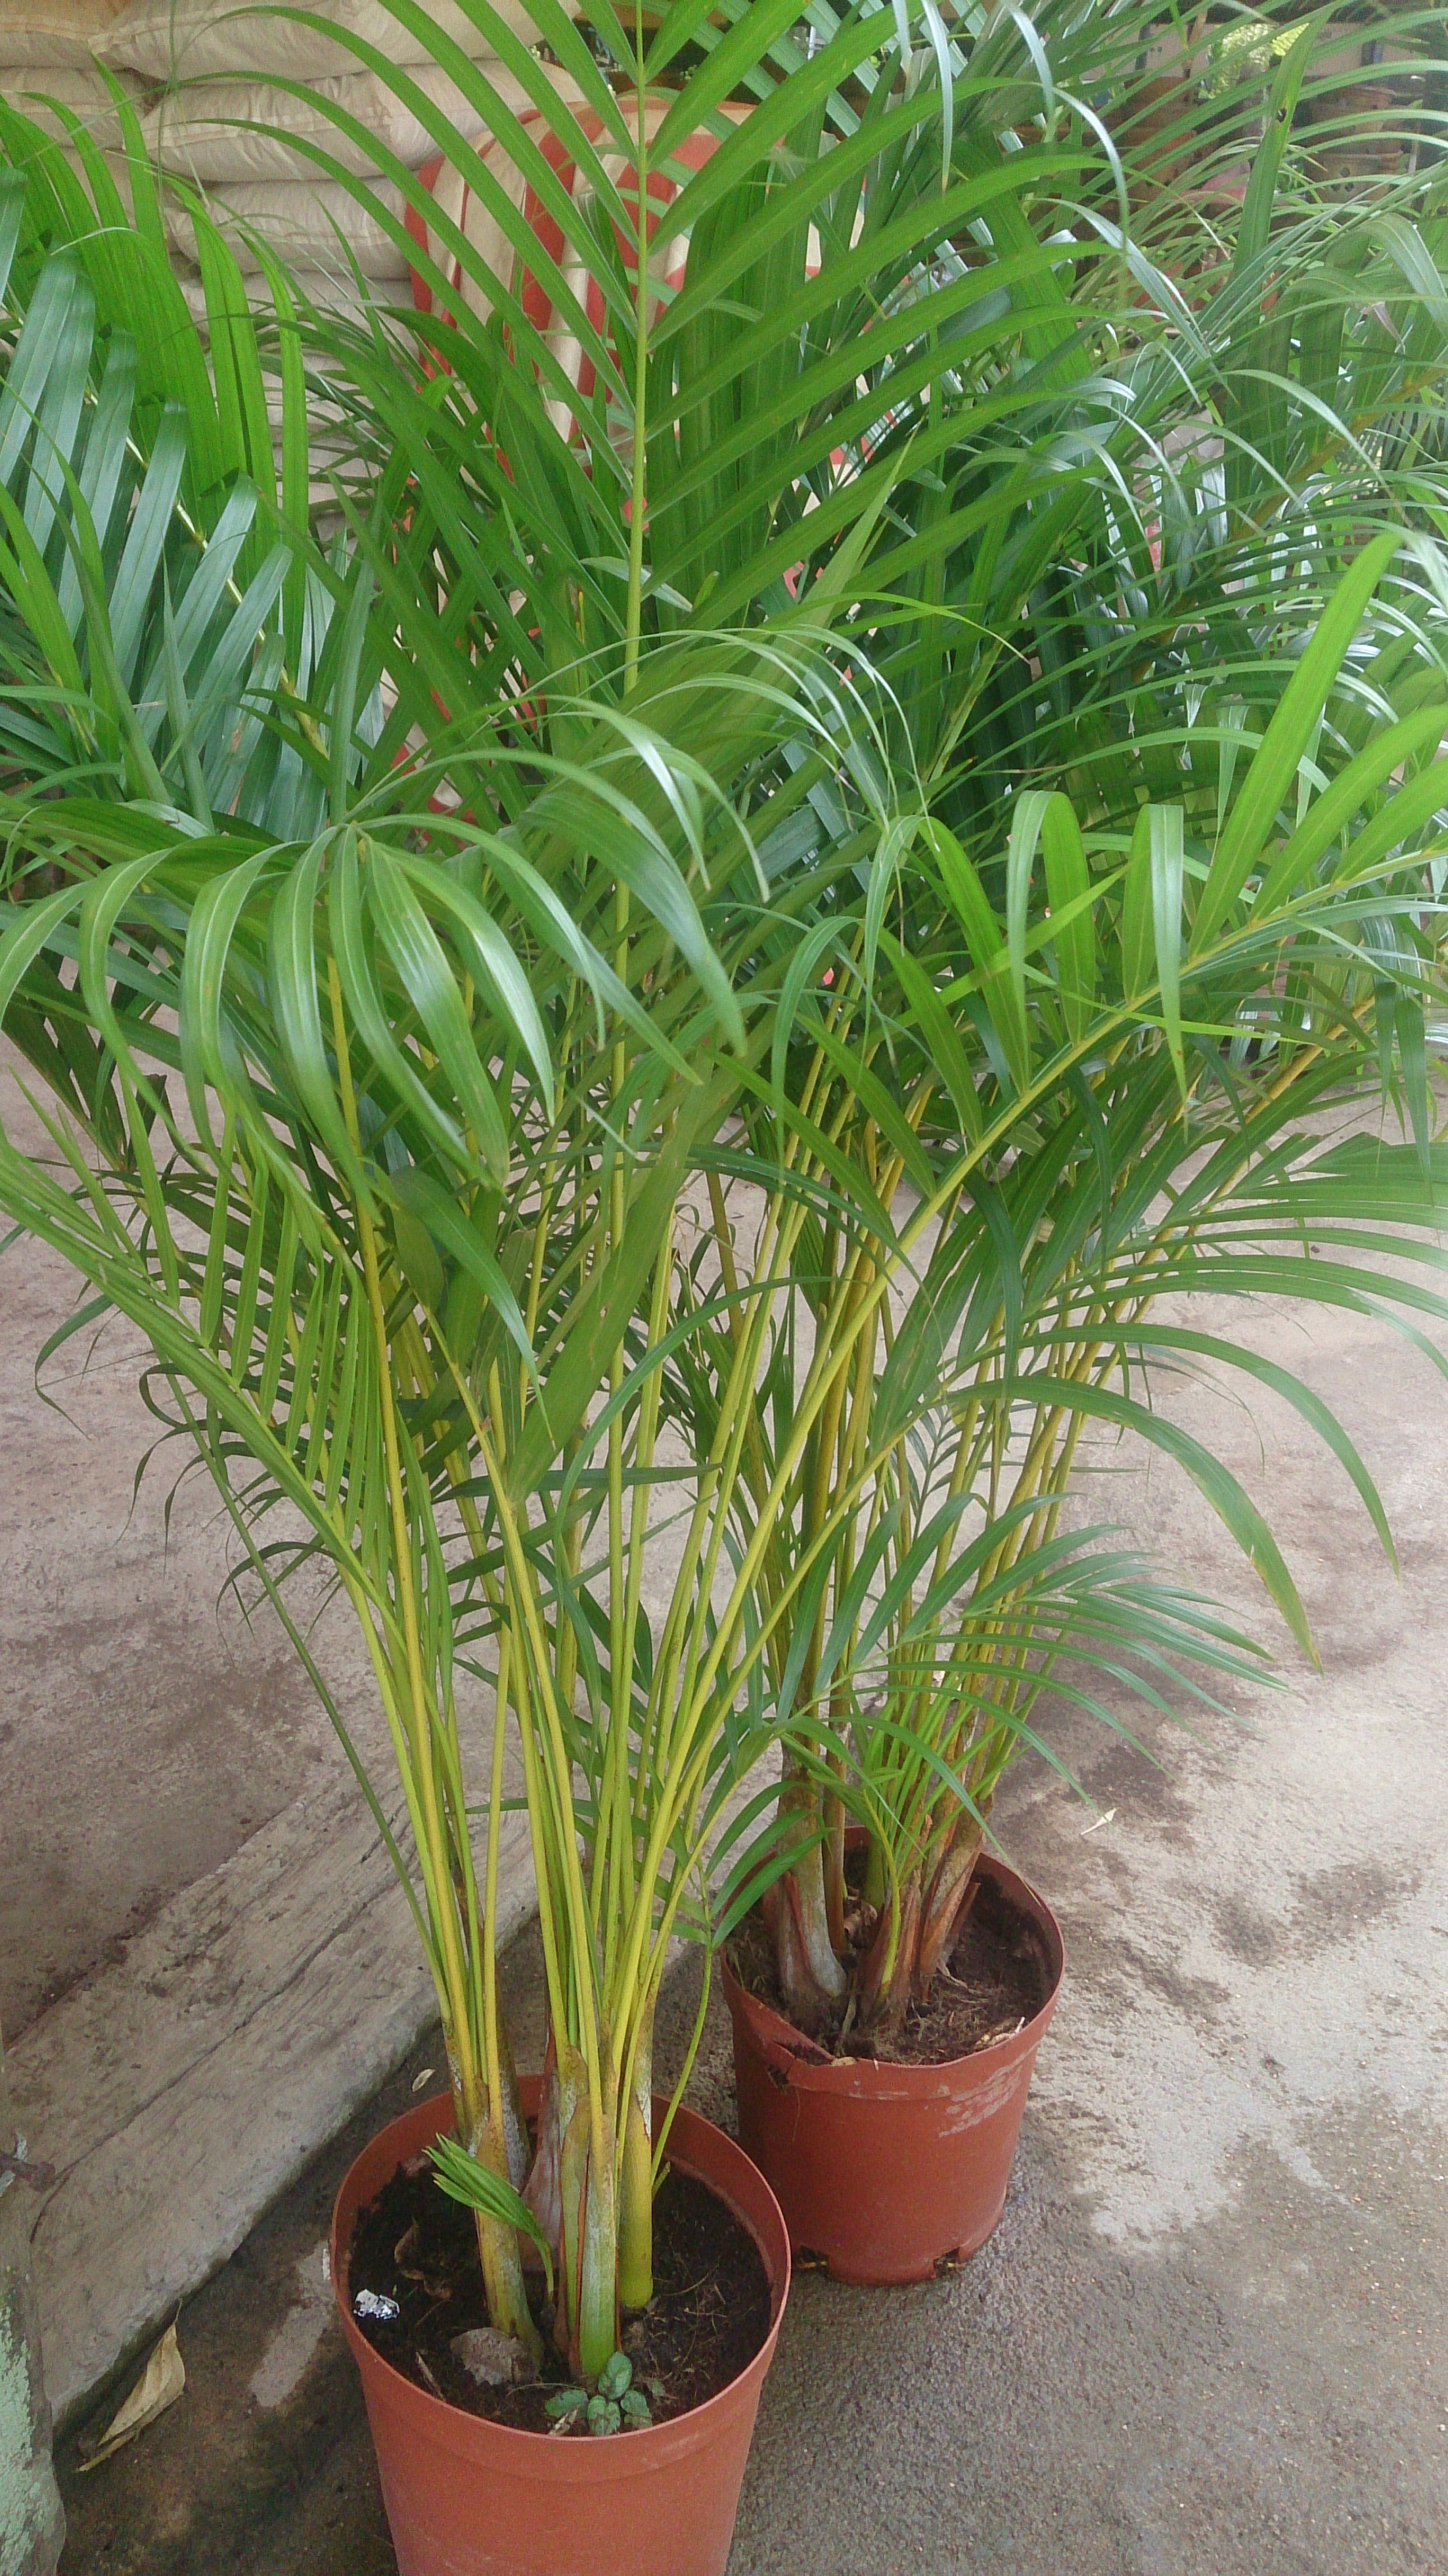 Top 5 houseplants for spring rental living for Pictures of areca palm plants